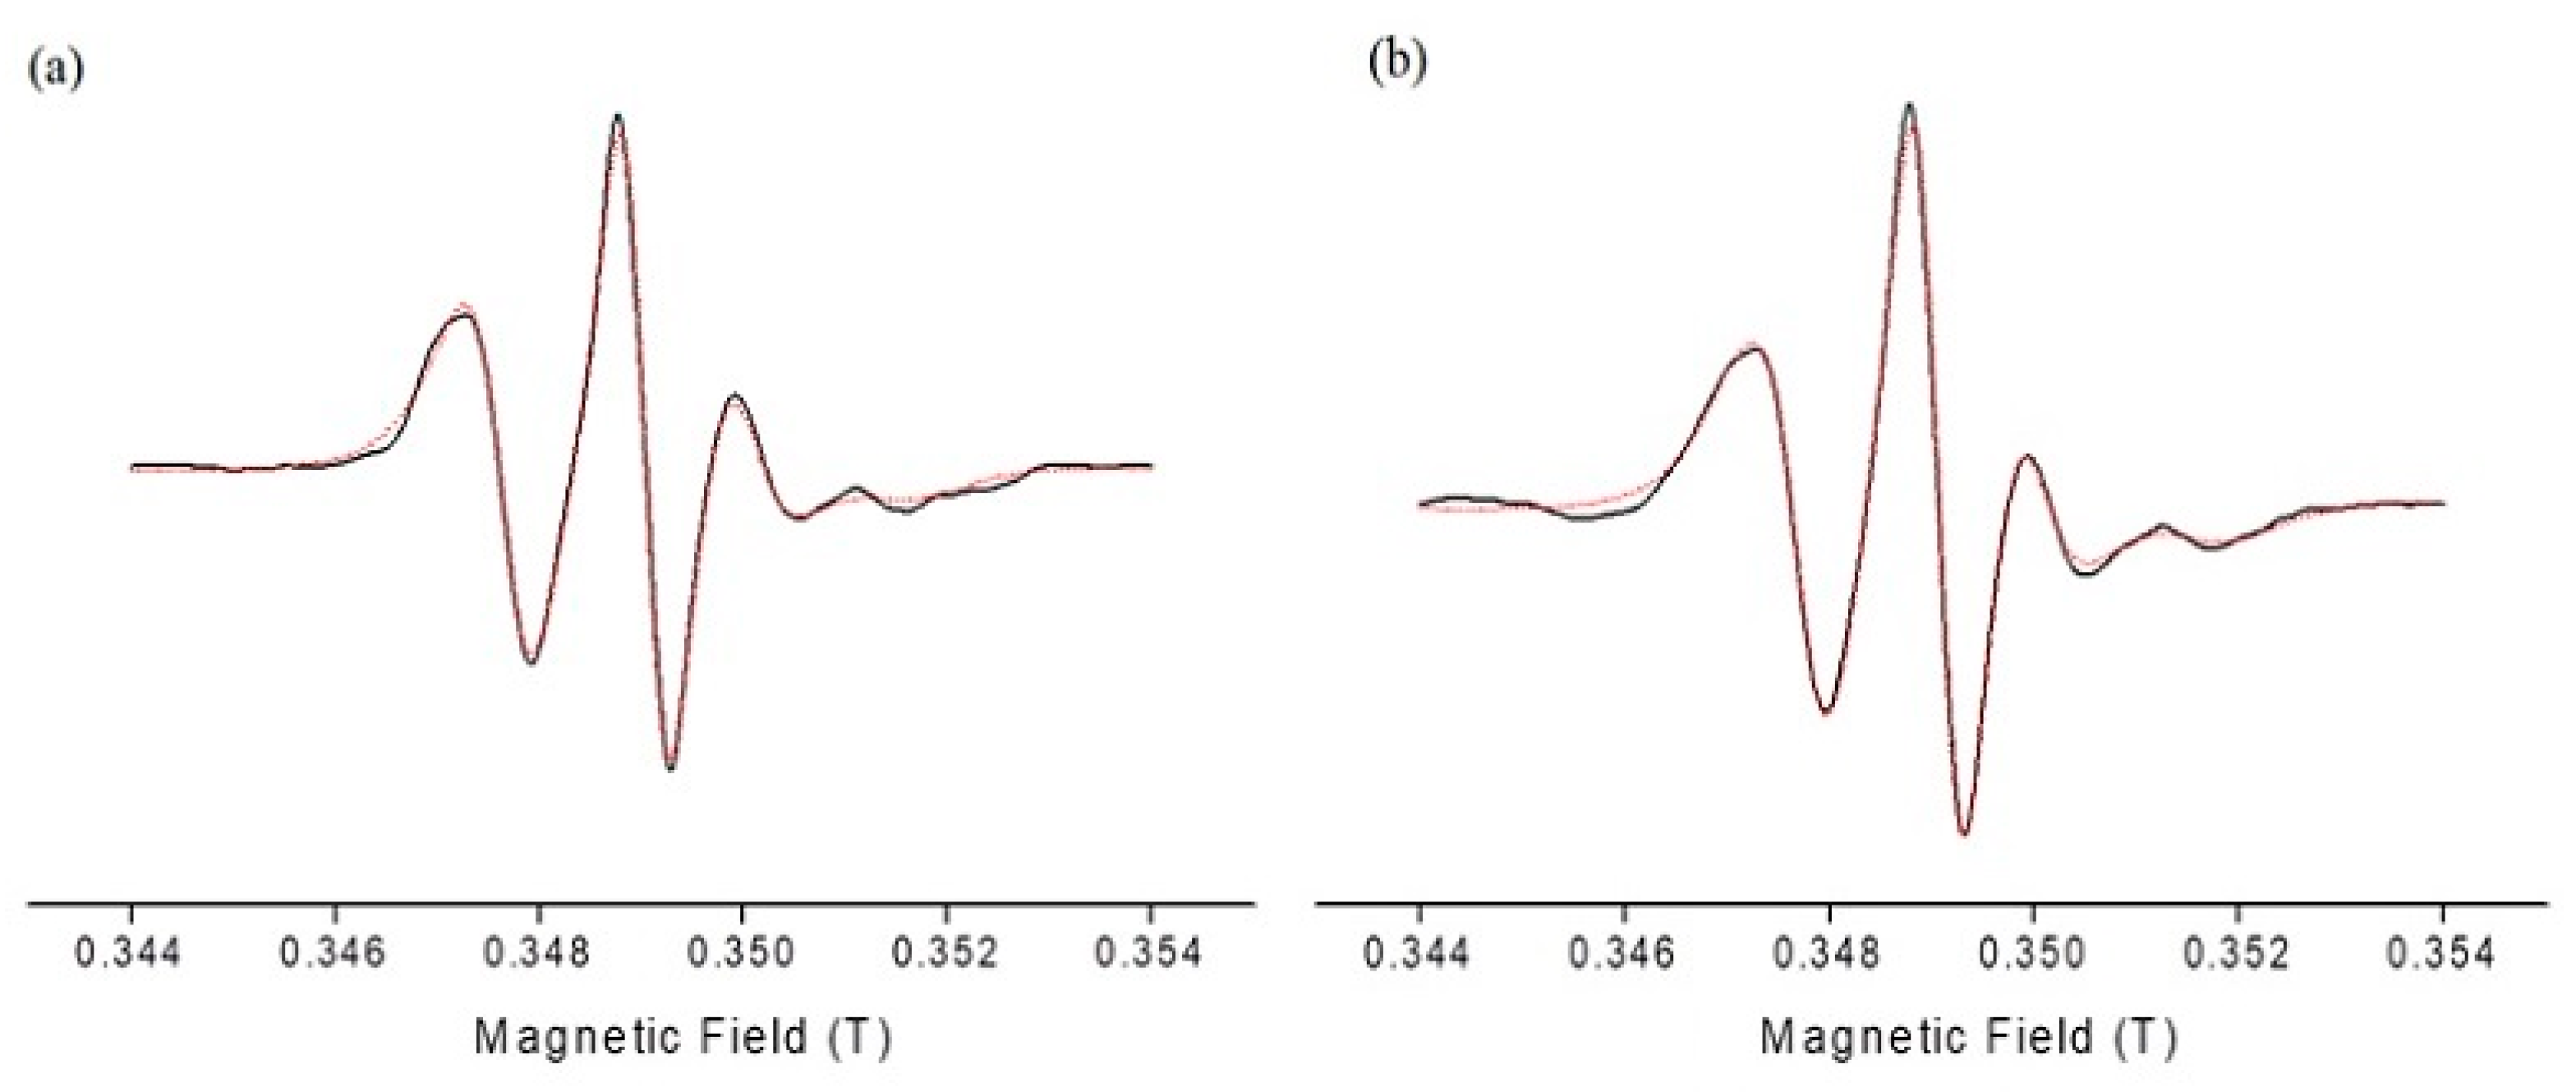 Origins In Generalized Phase Diagram For Propane Placed Replaces By